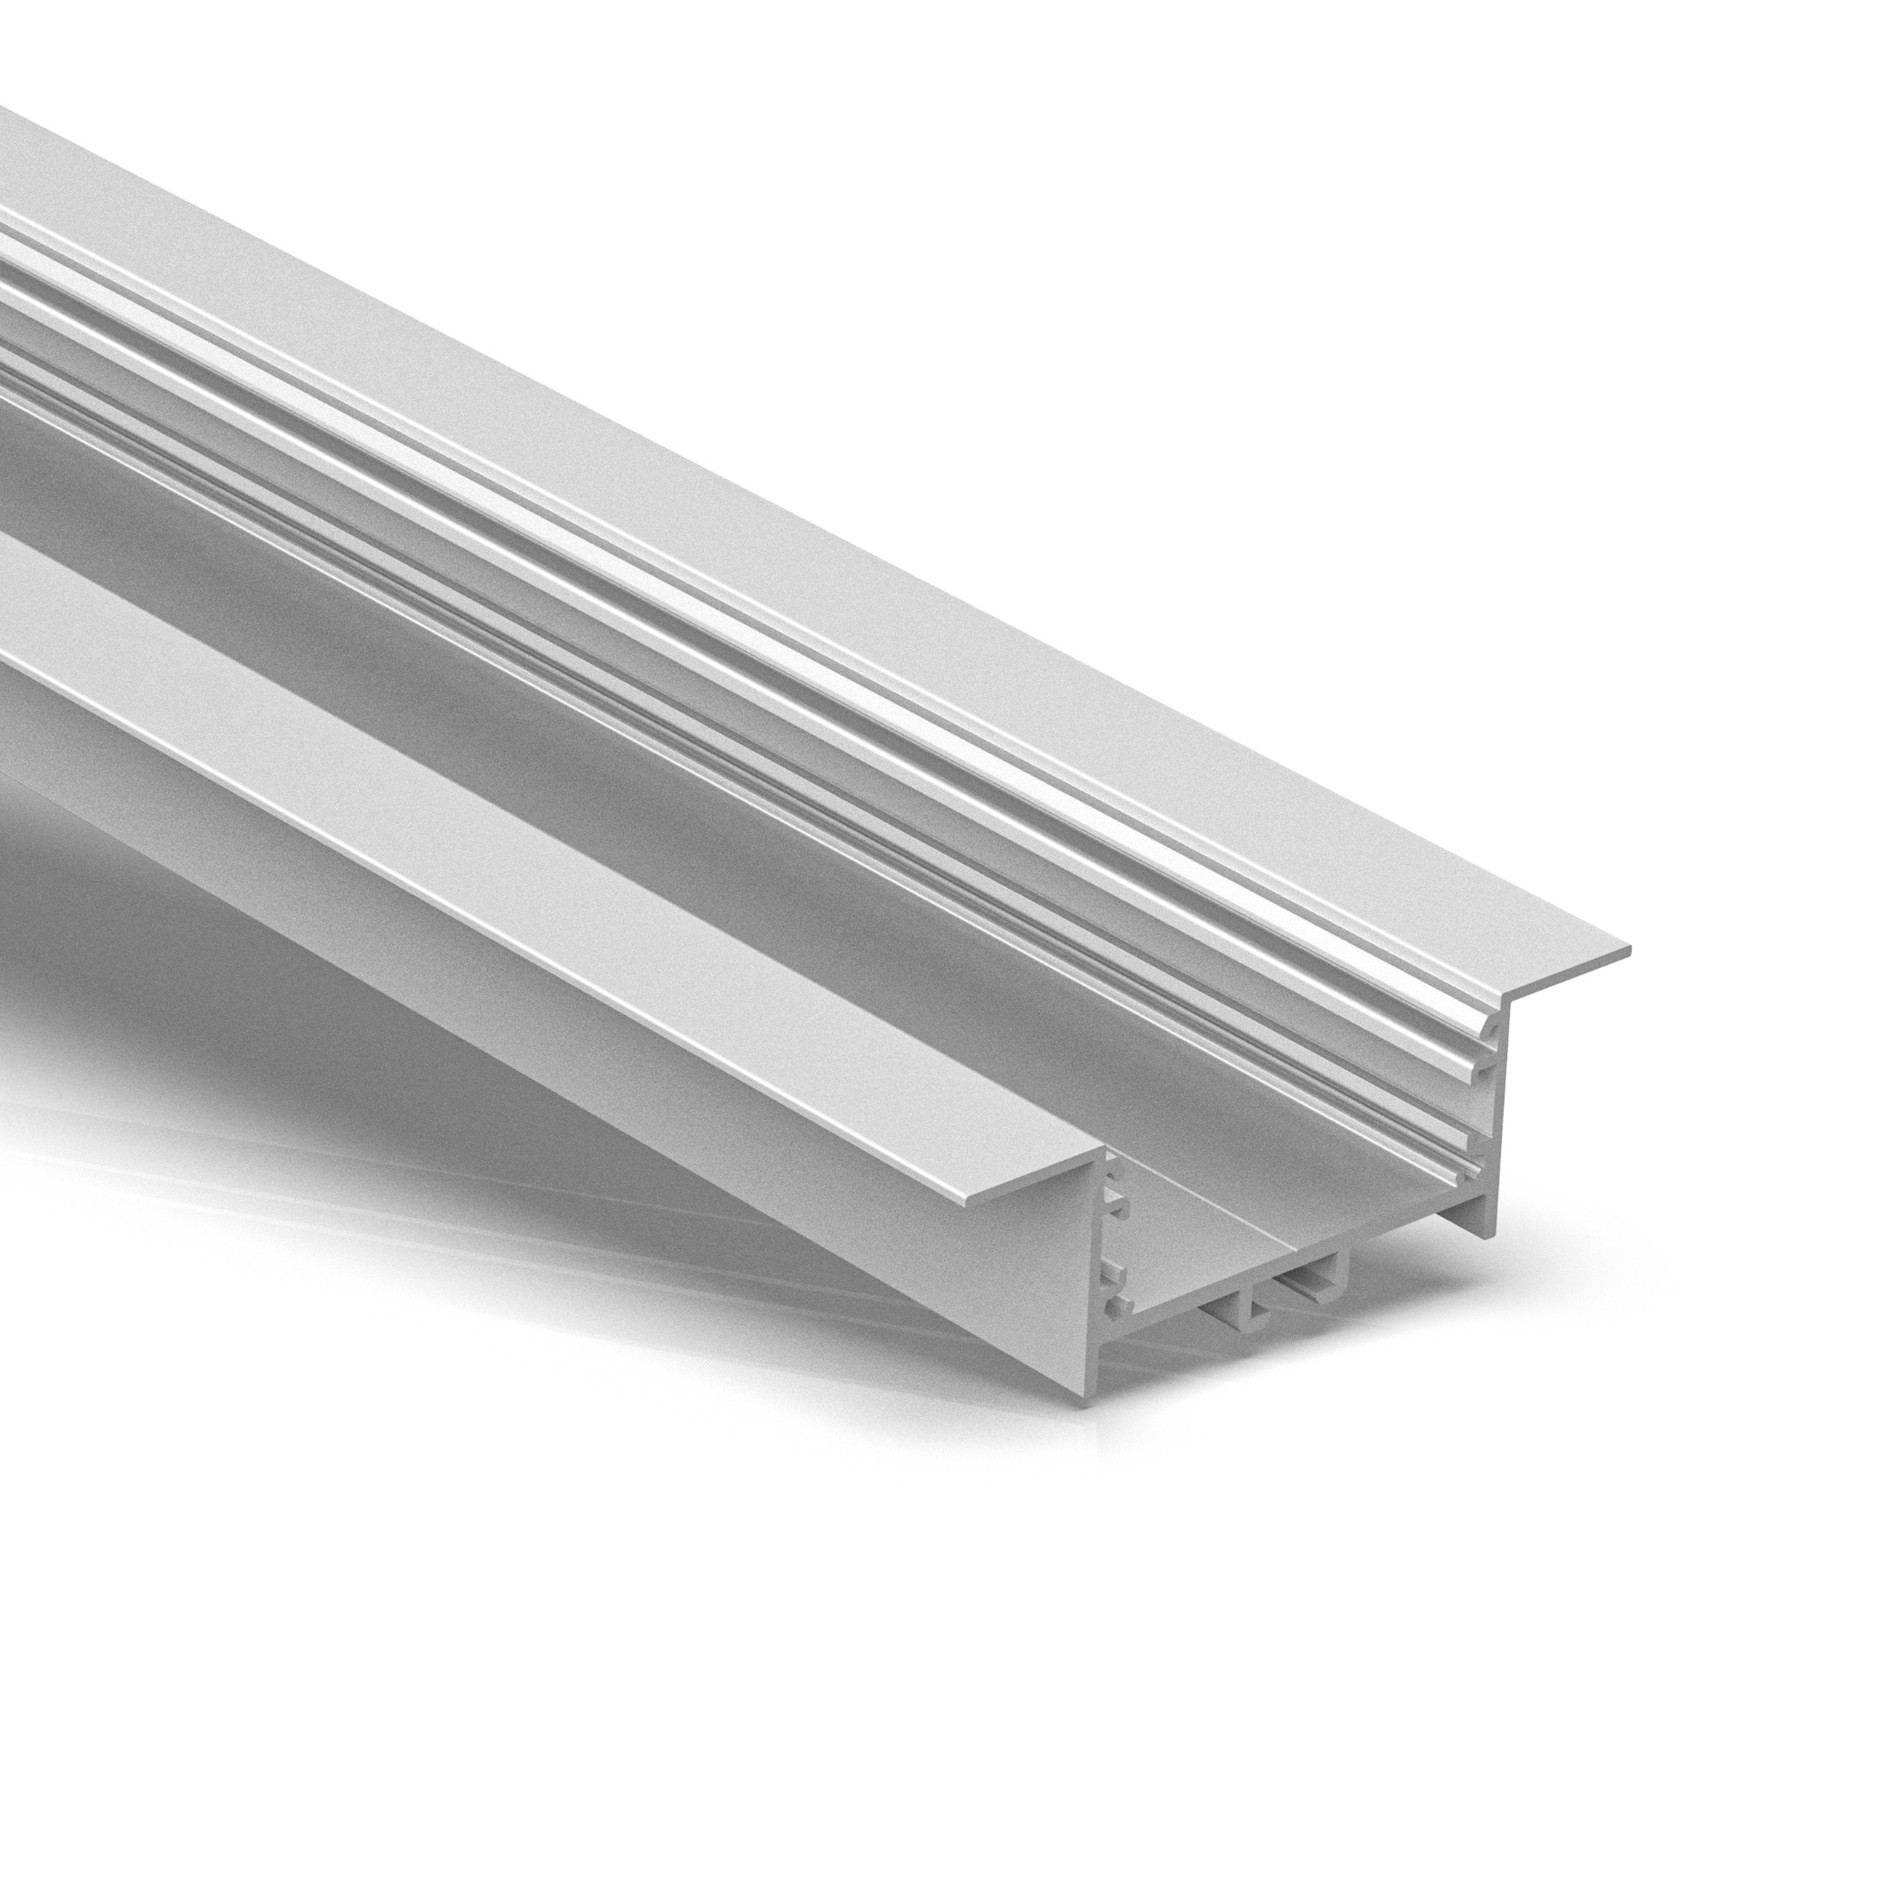 ER50-2 50 mm breites, versenktes LED-Extrusionsprofil 80 x 25 mm